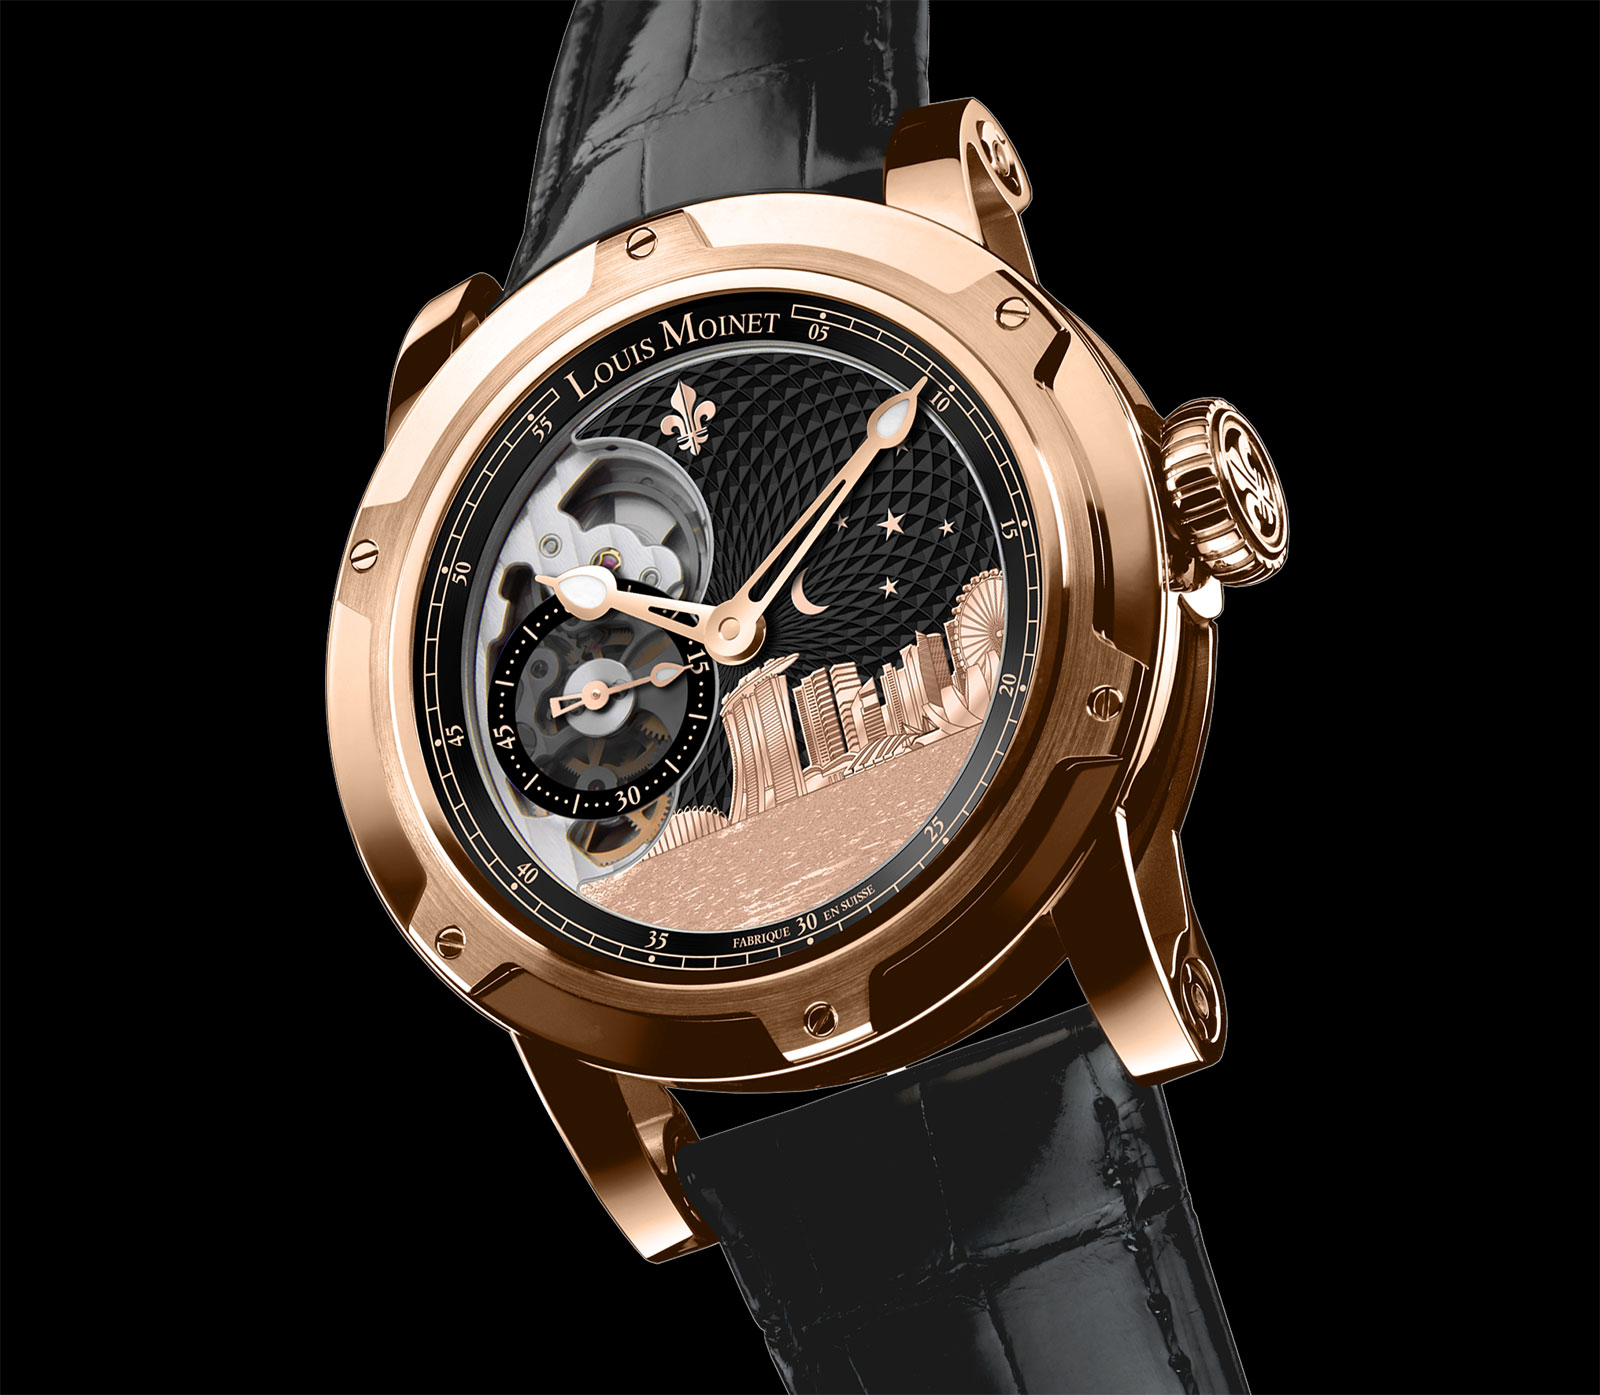 Louis Moinet Singapore Edition watch 1